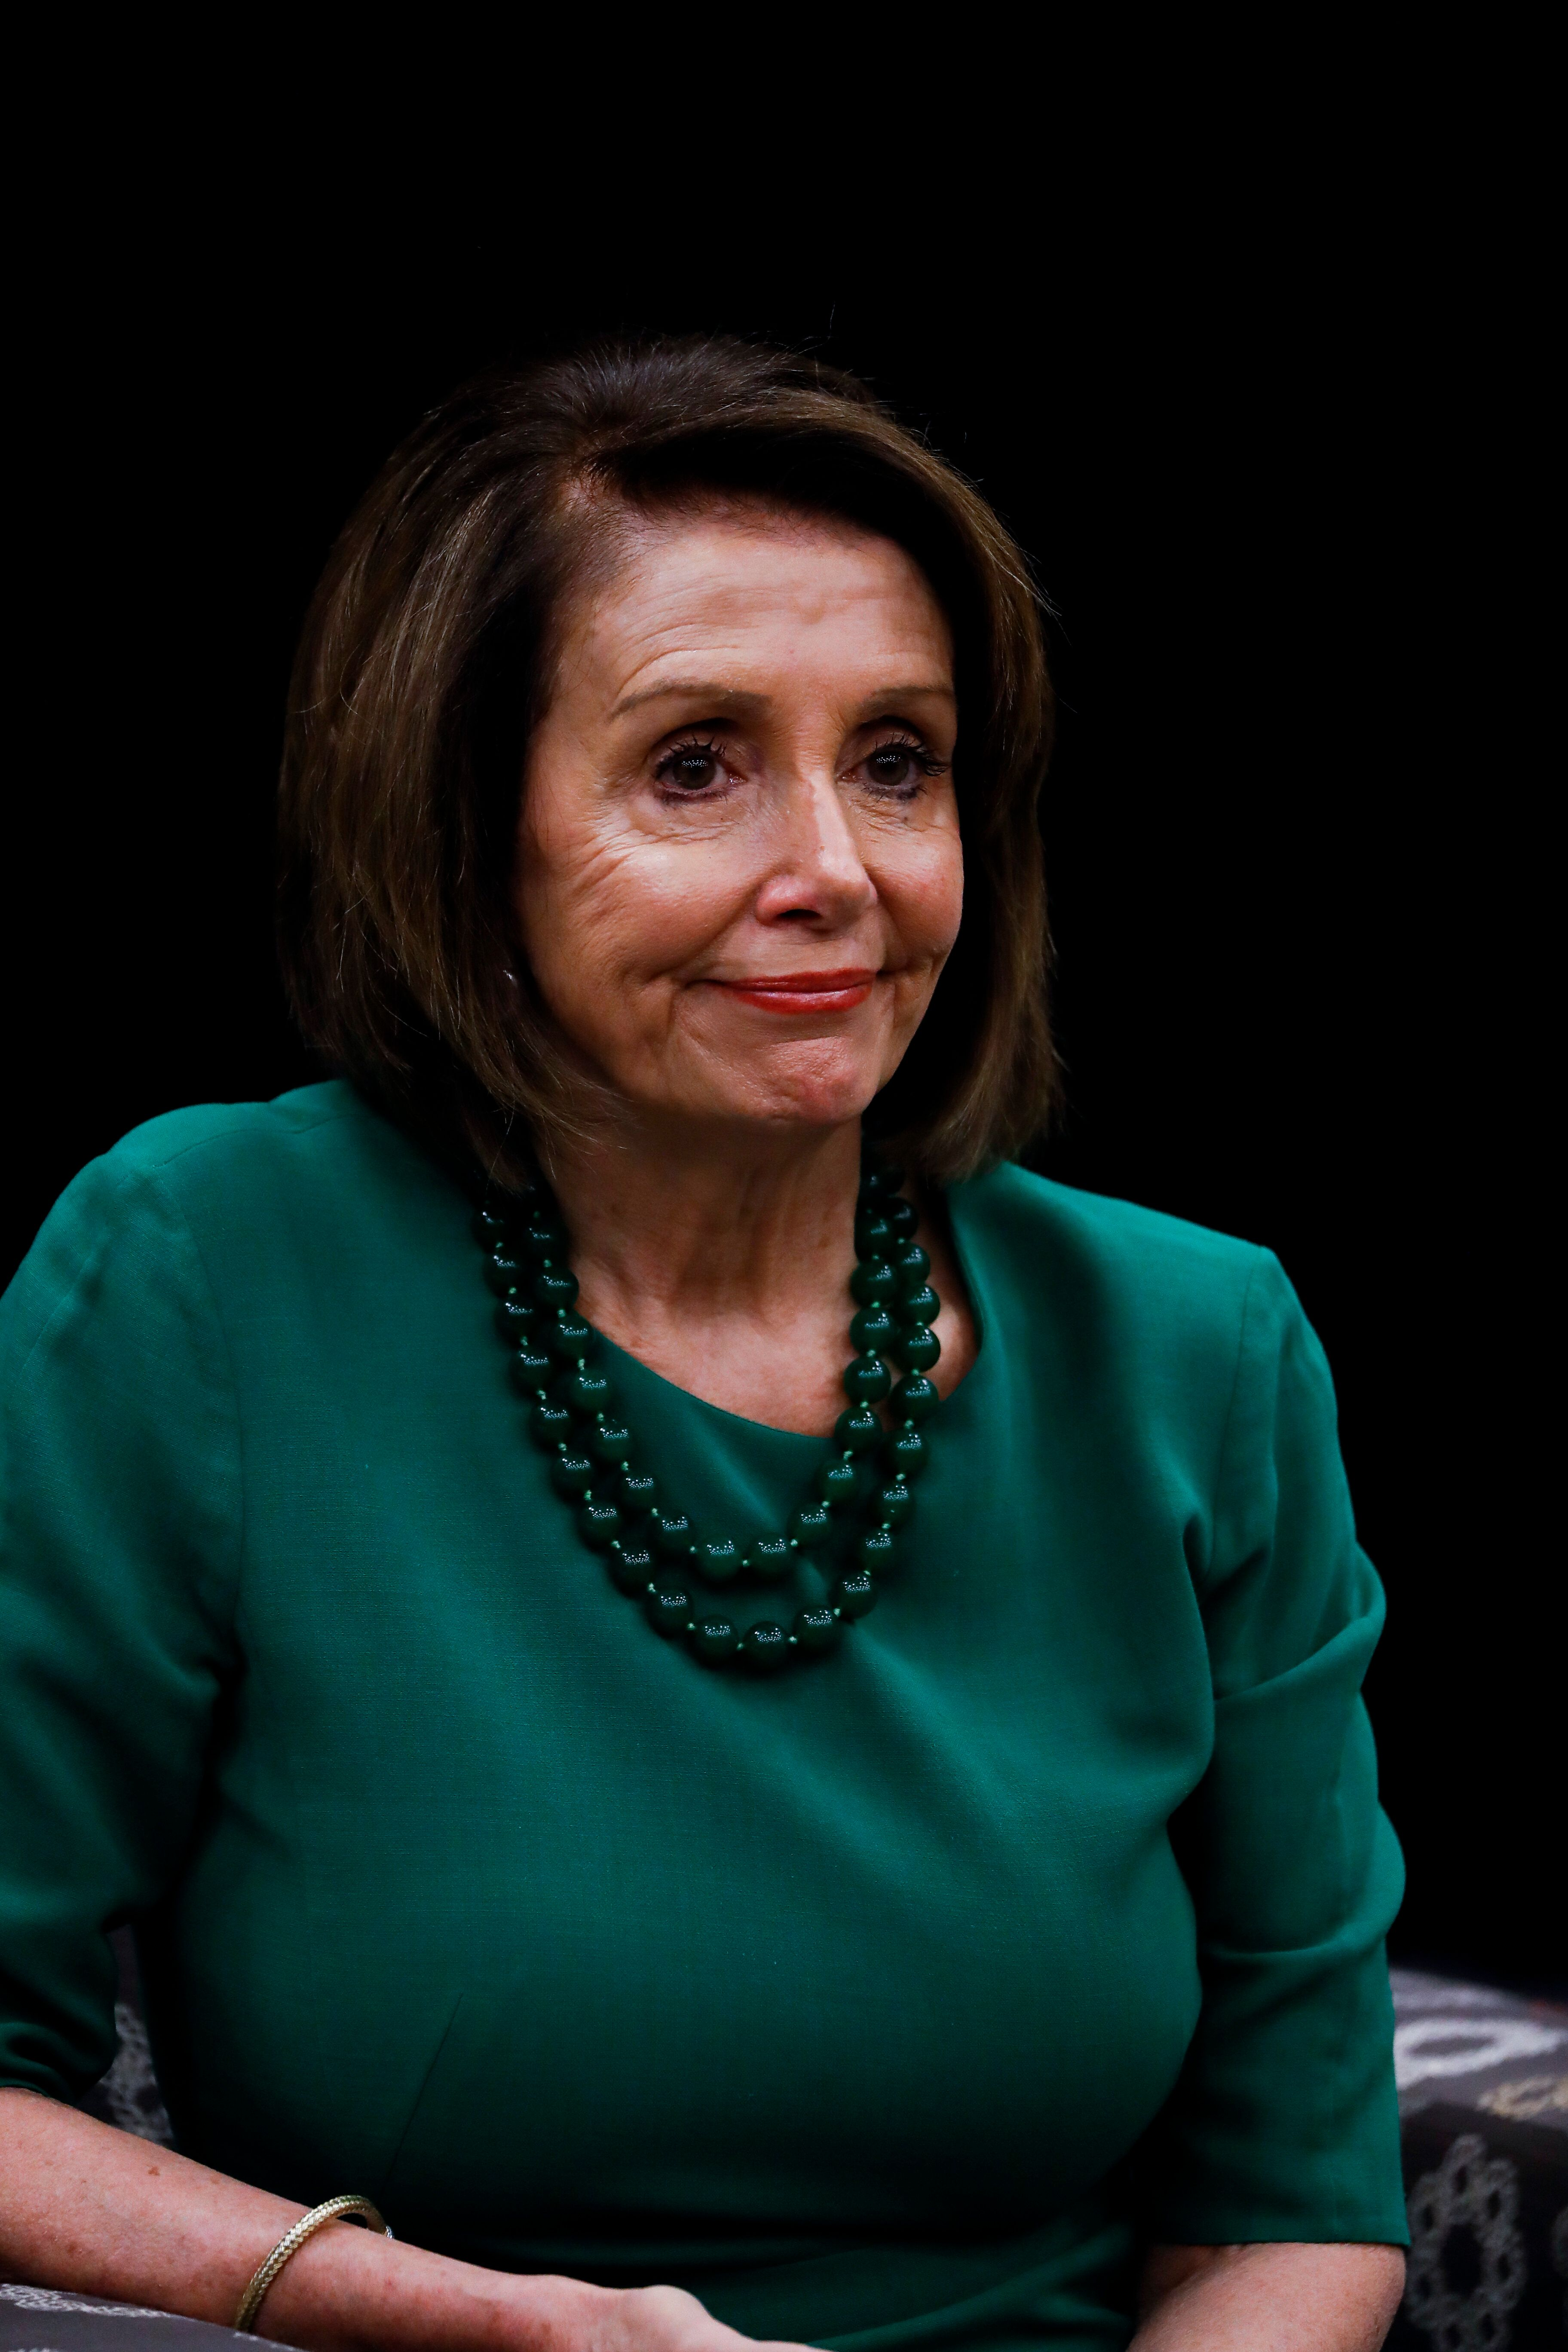 Facebook Refuses To Delete Fake Nancy Pelosi Video That Makes Her Seem Drunk